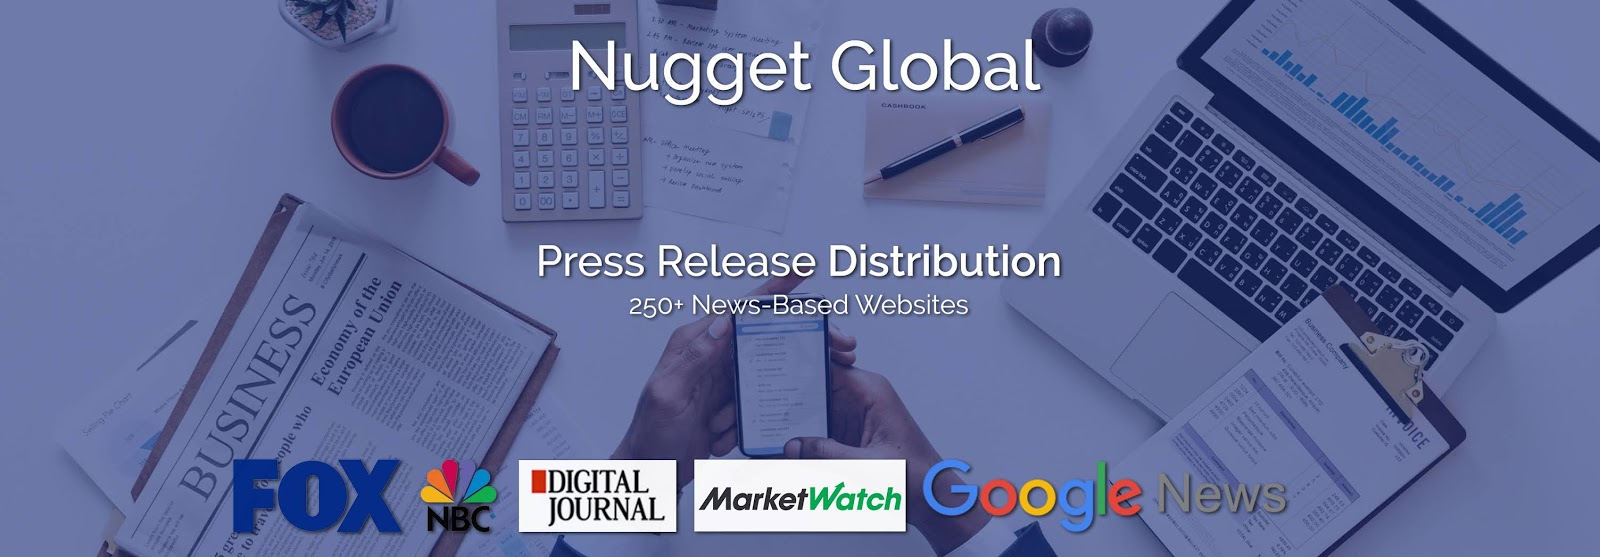 Distribute your press release to 250+ news-based websites, including MarketWatch, FOX, NBC, Digital Journal and many more.